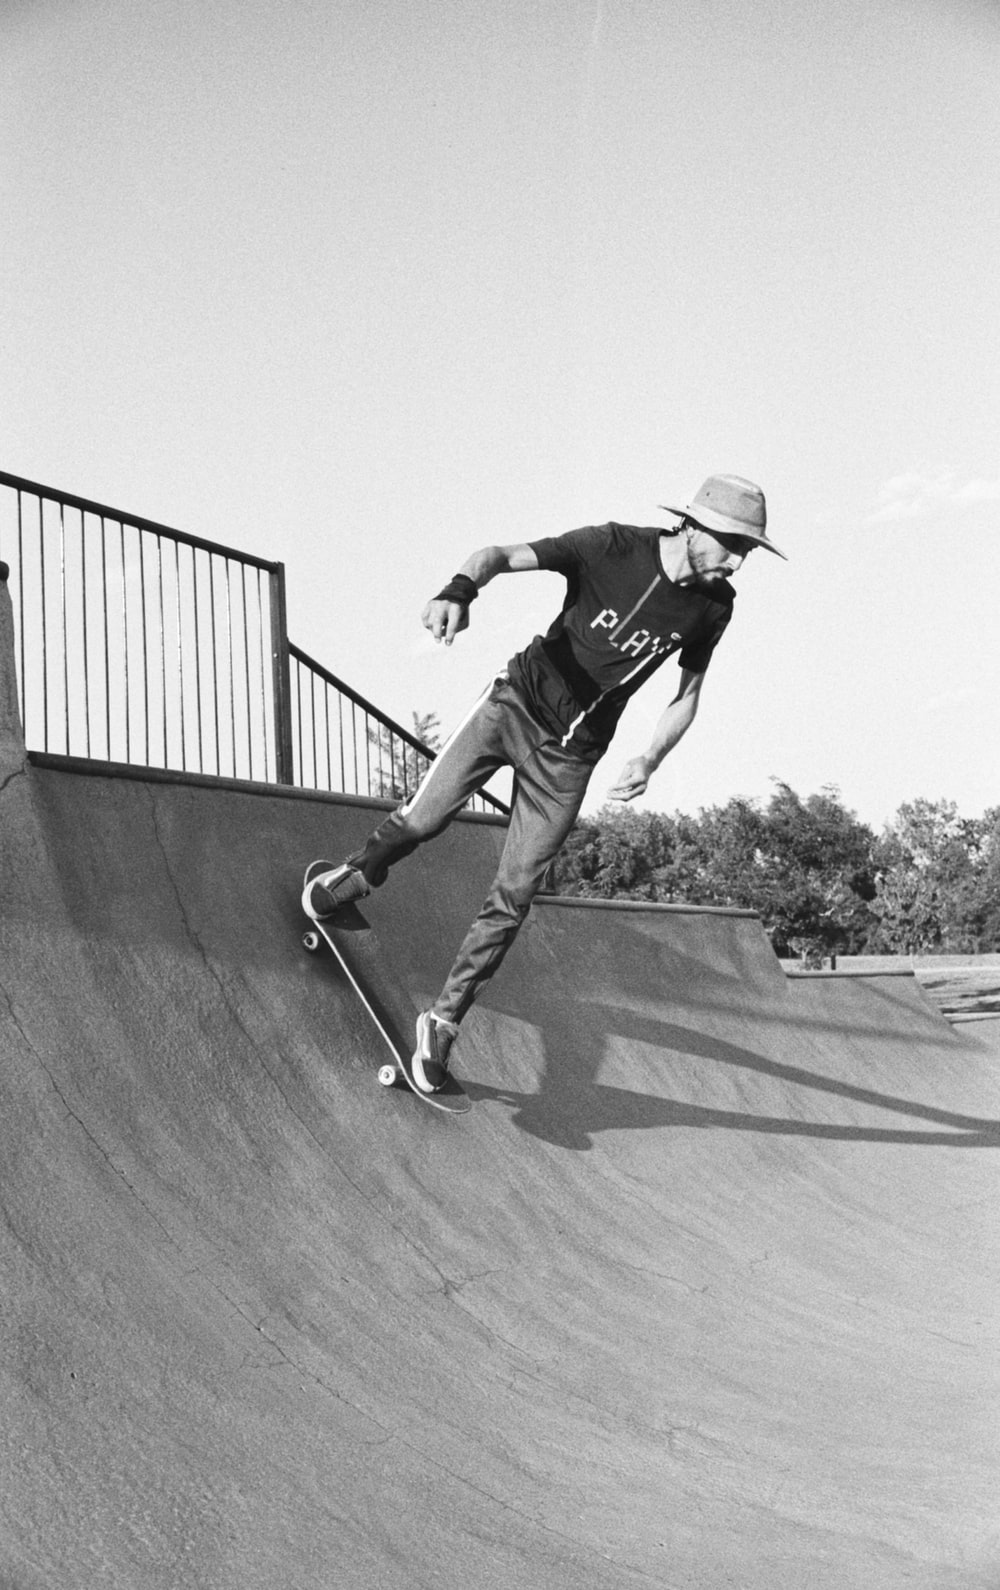 man in black t-shirt and pants riding skateboard in grayscale photography